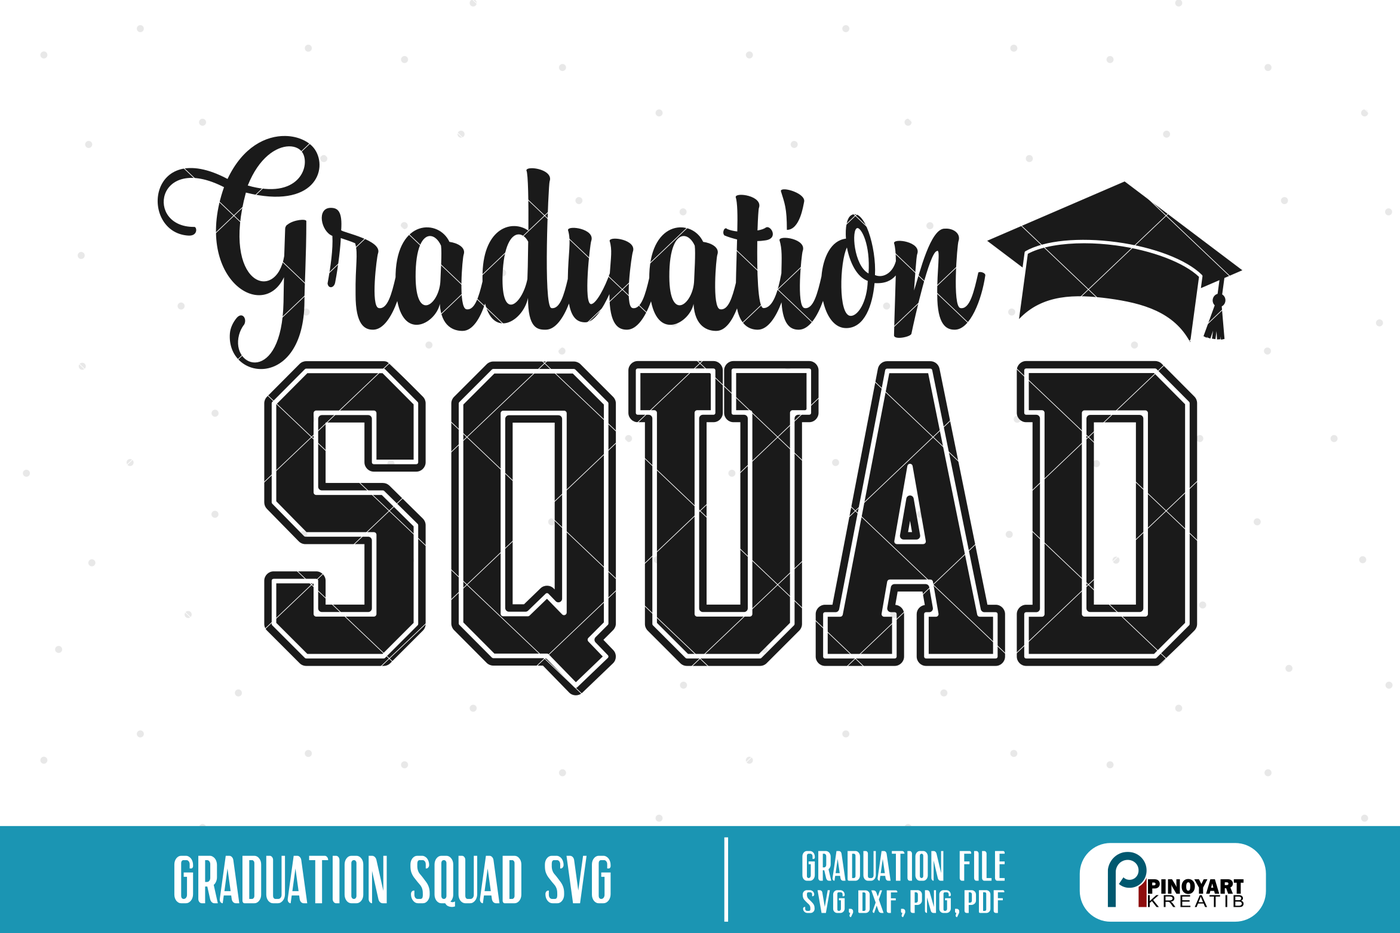 Graduation Squad Svg Graduation Svg Grad Svg Svg Files For